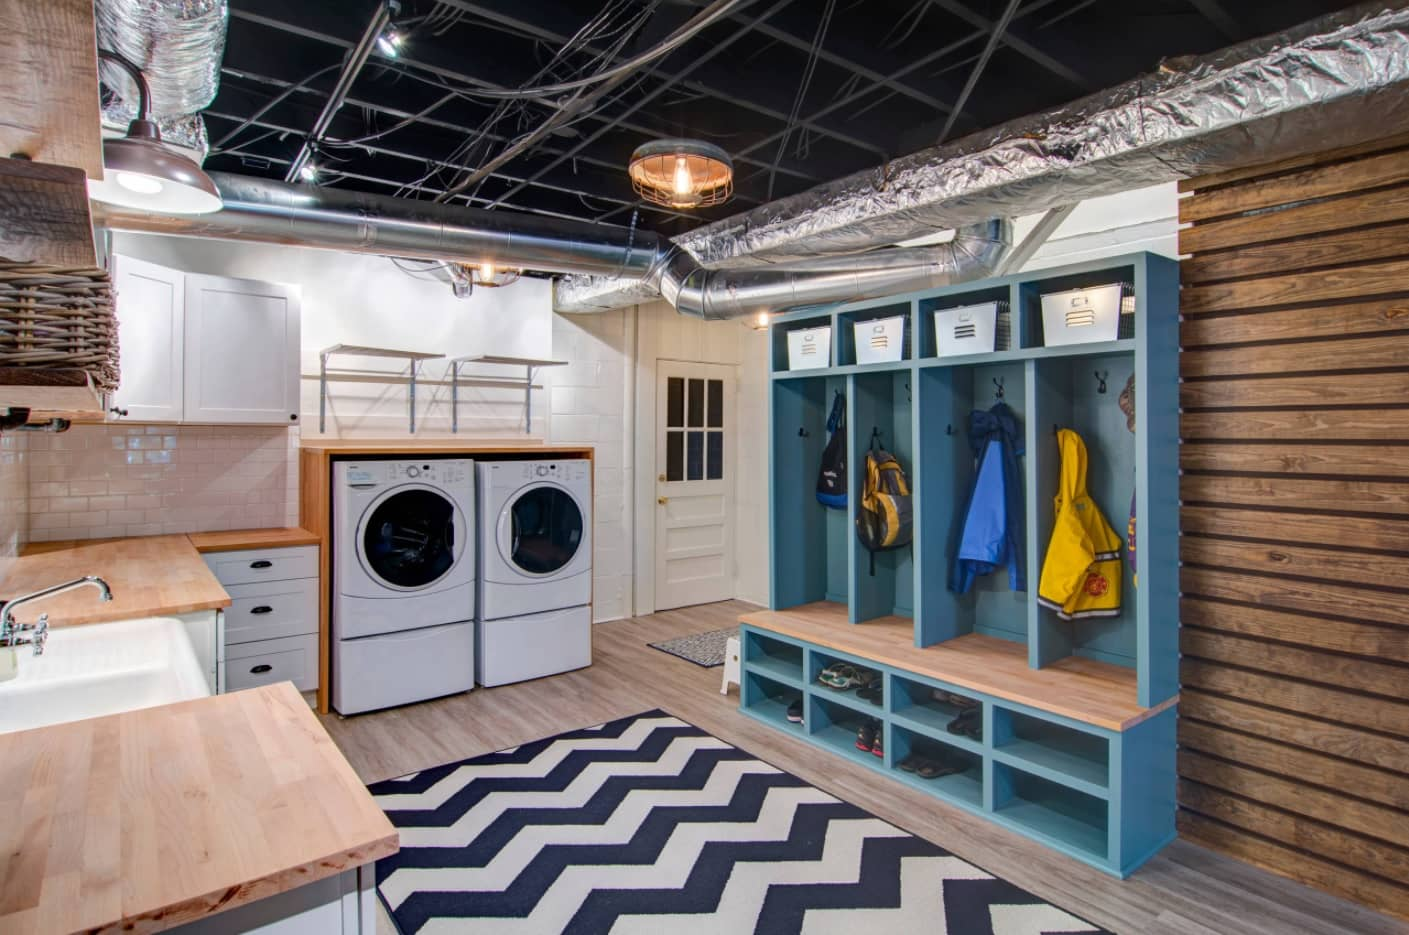 Laundry and mud room combination with wavy pattern rug